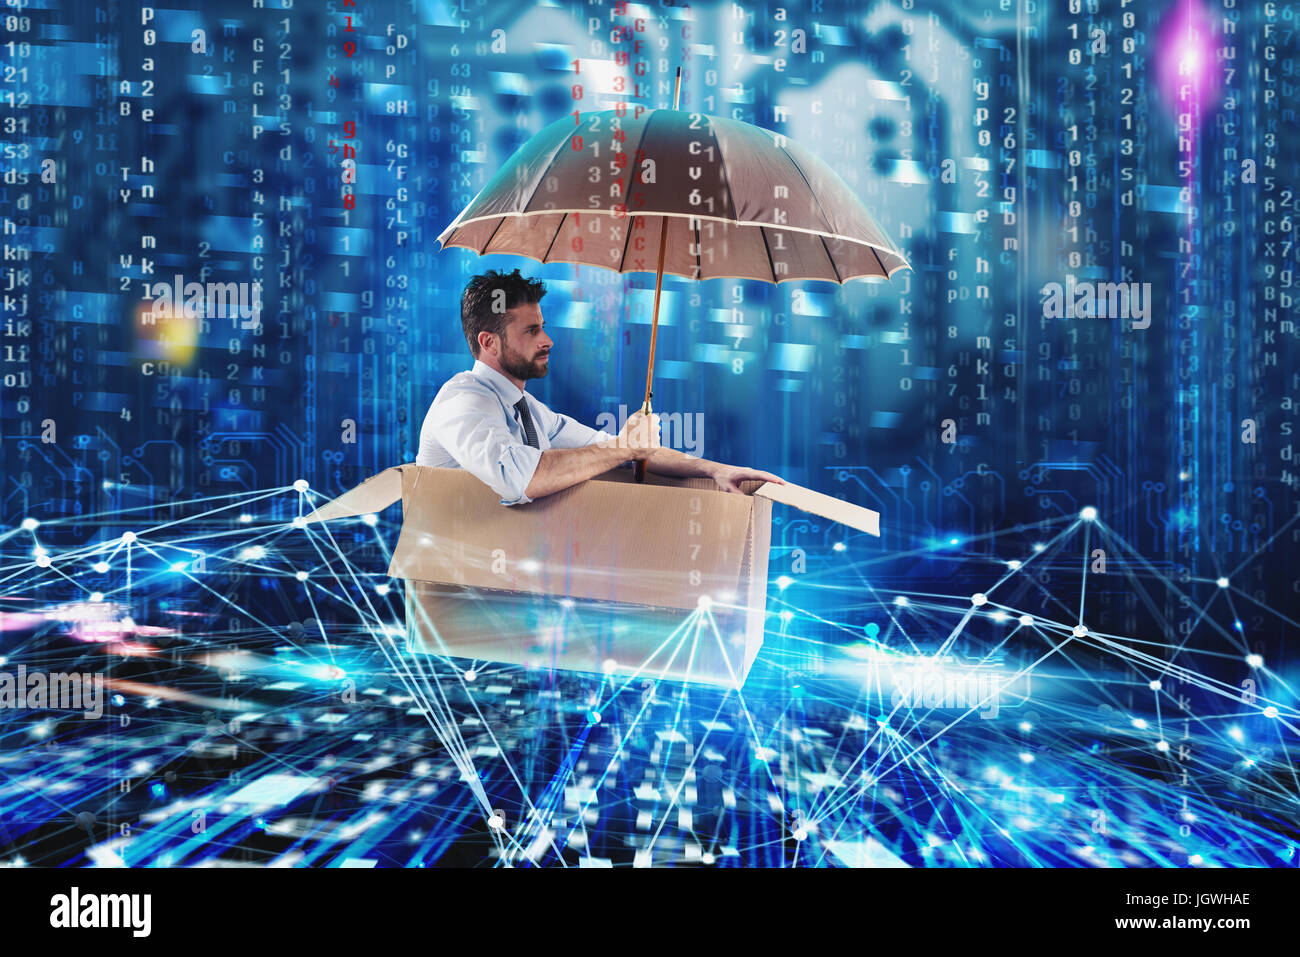 Businessman surfing the internet on a cardboard. Internet exploration concept Stock Photo